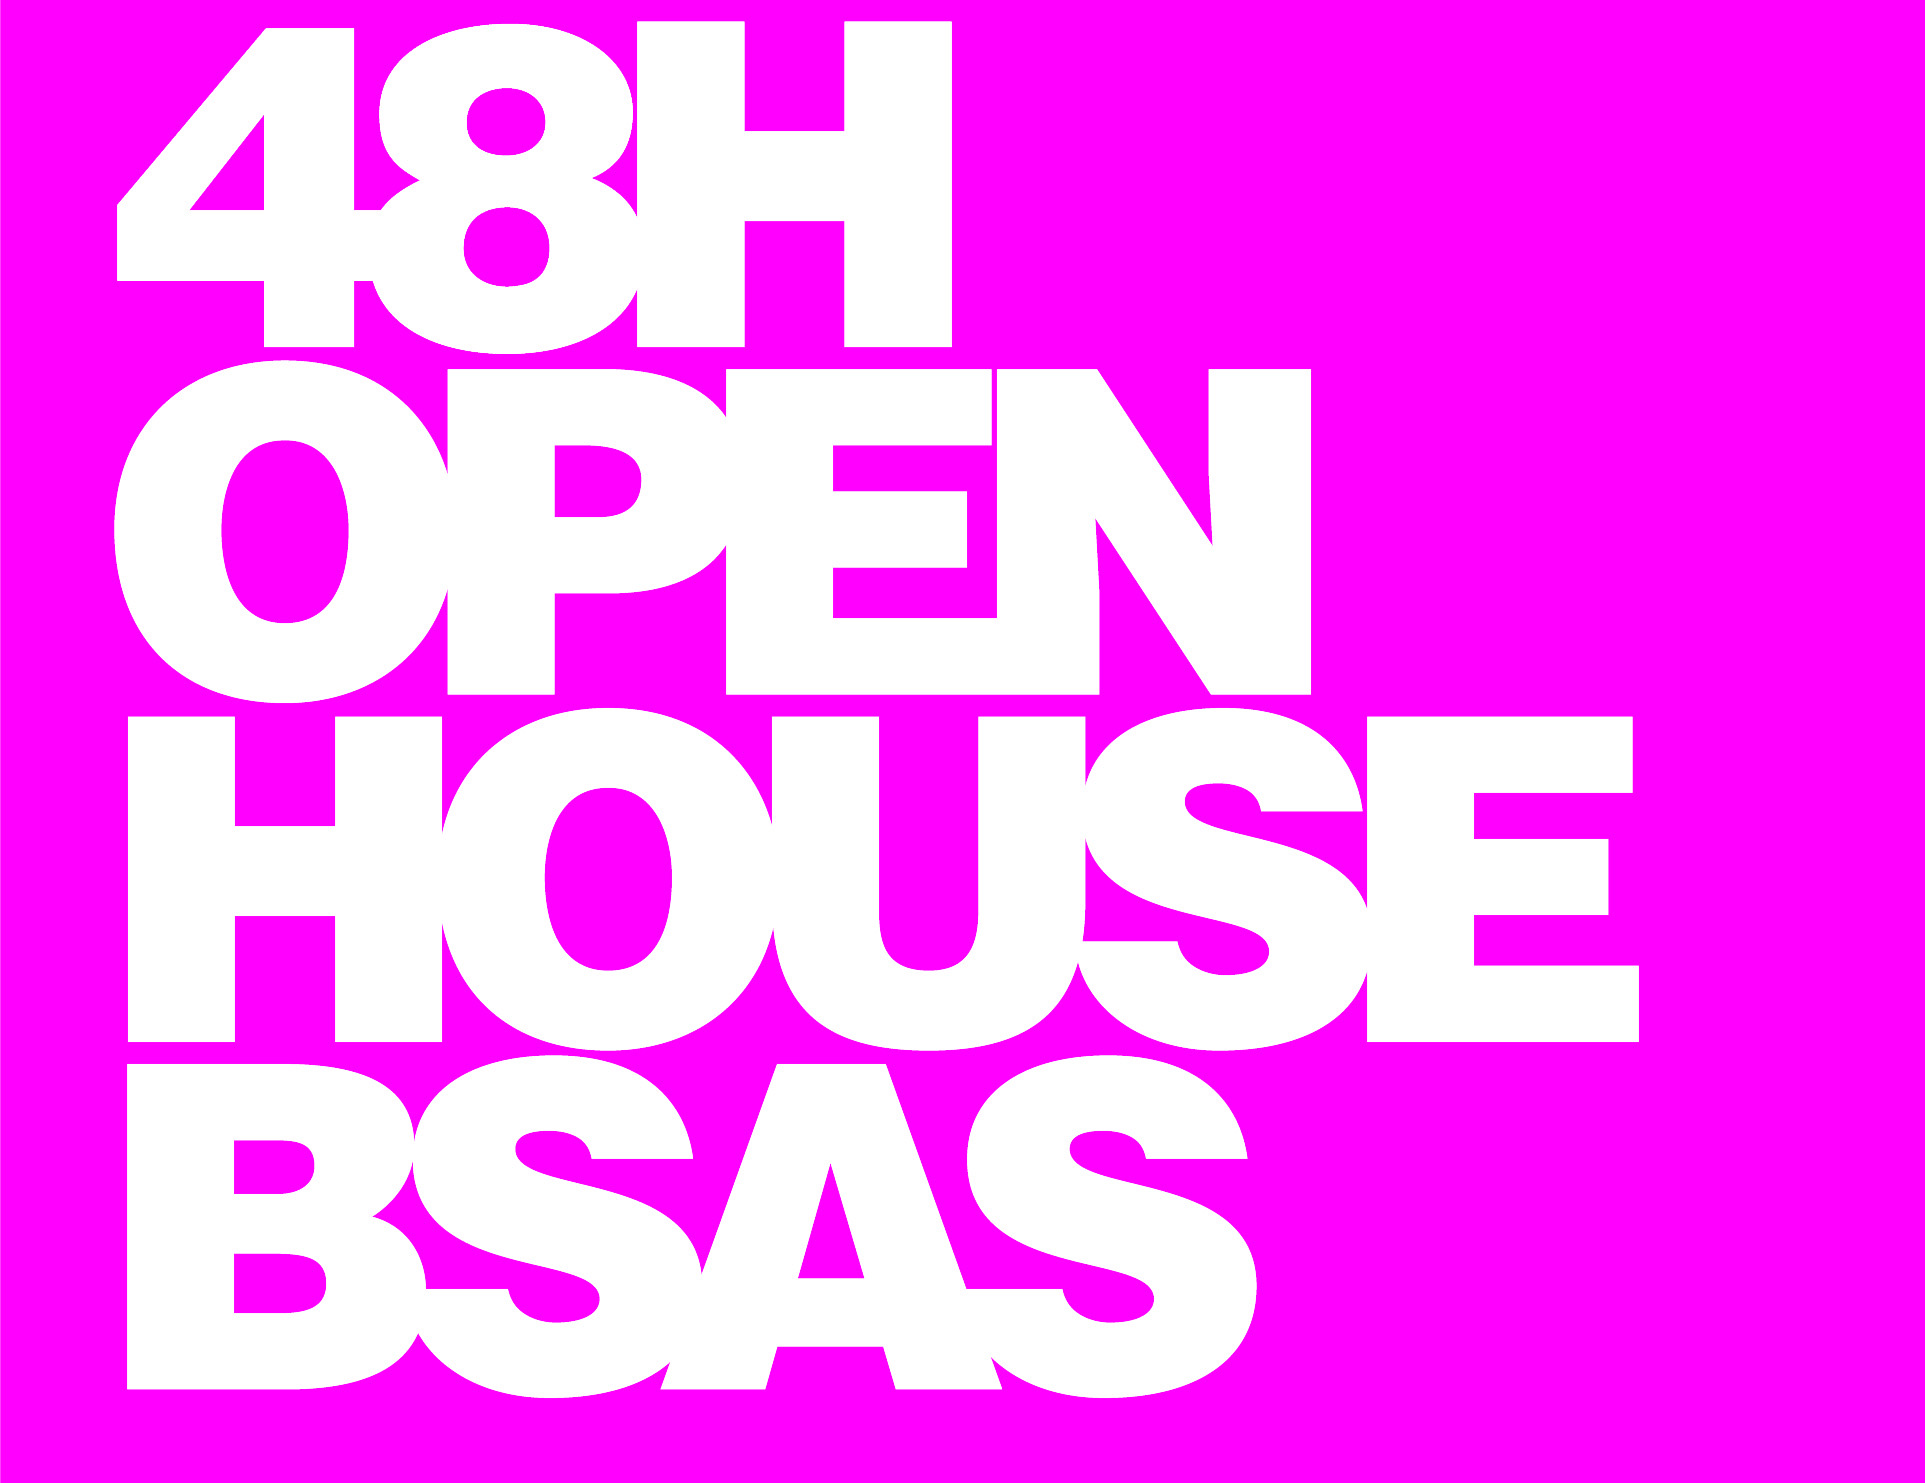 48h open house bsas 2 edici n ideame